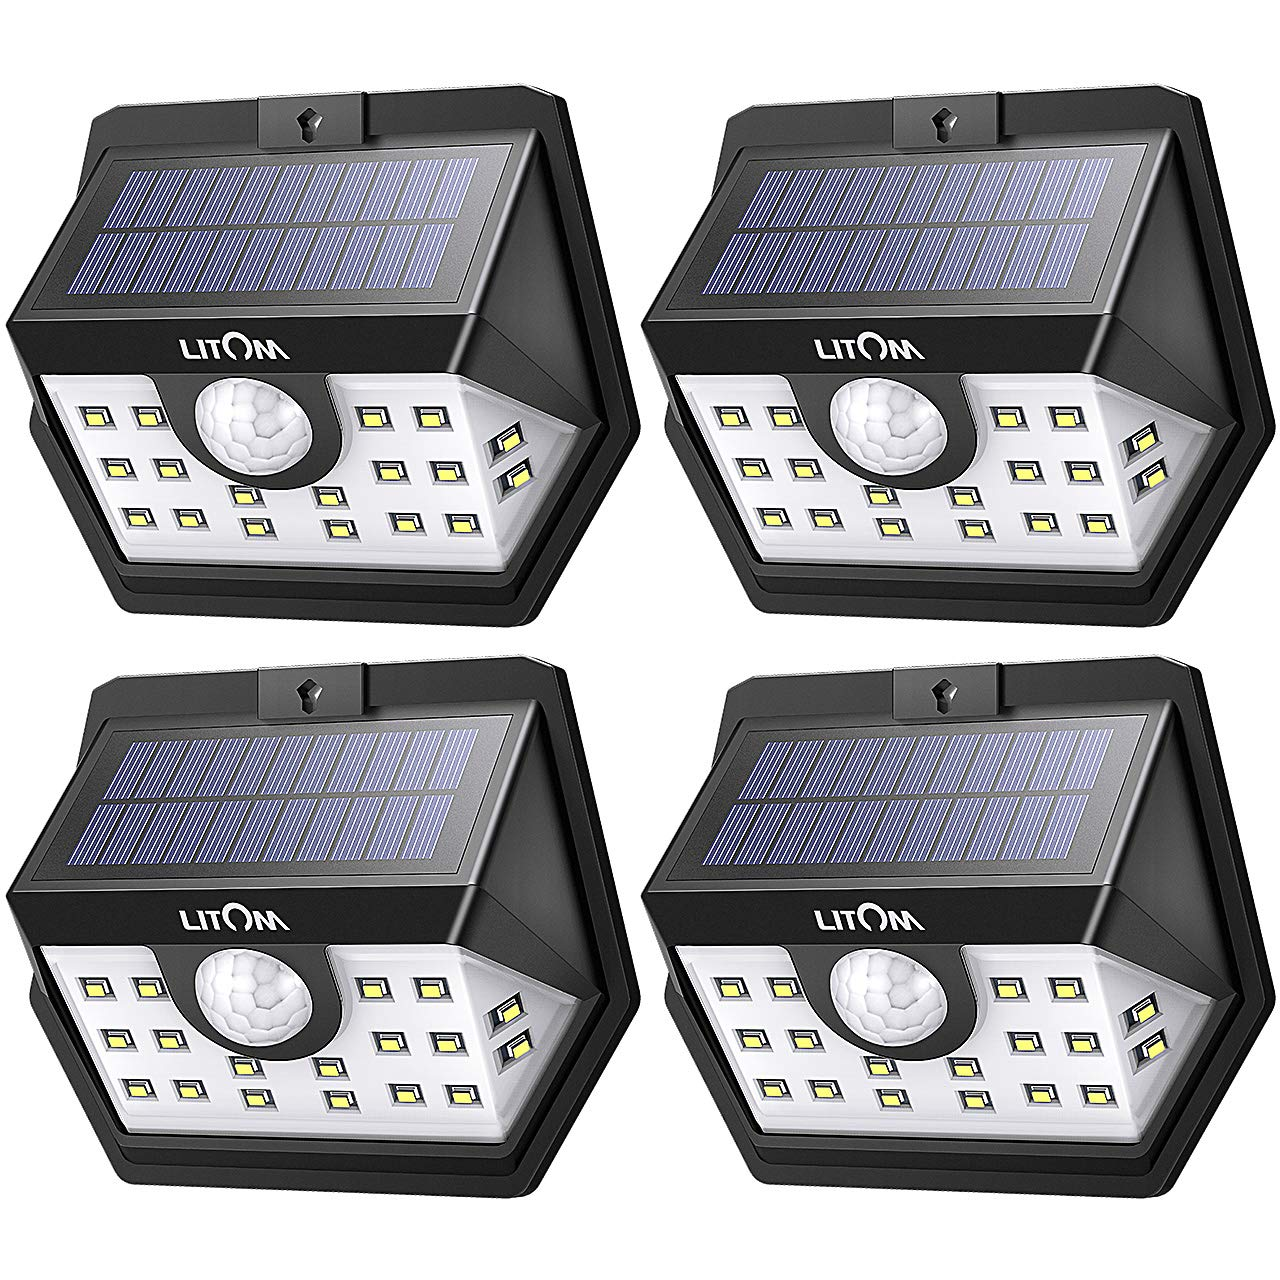 LITOM Classic Solar Lights Outdoor, 20 LED Wireless Motion Sensor Lights(White Light), 270°Wide Angle, IP65 Waterproof, Easy-to-install Security Lights for Front Door, Yard, Garage, Deck, Porch-4 Pack by Litom